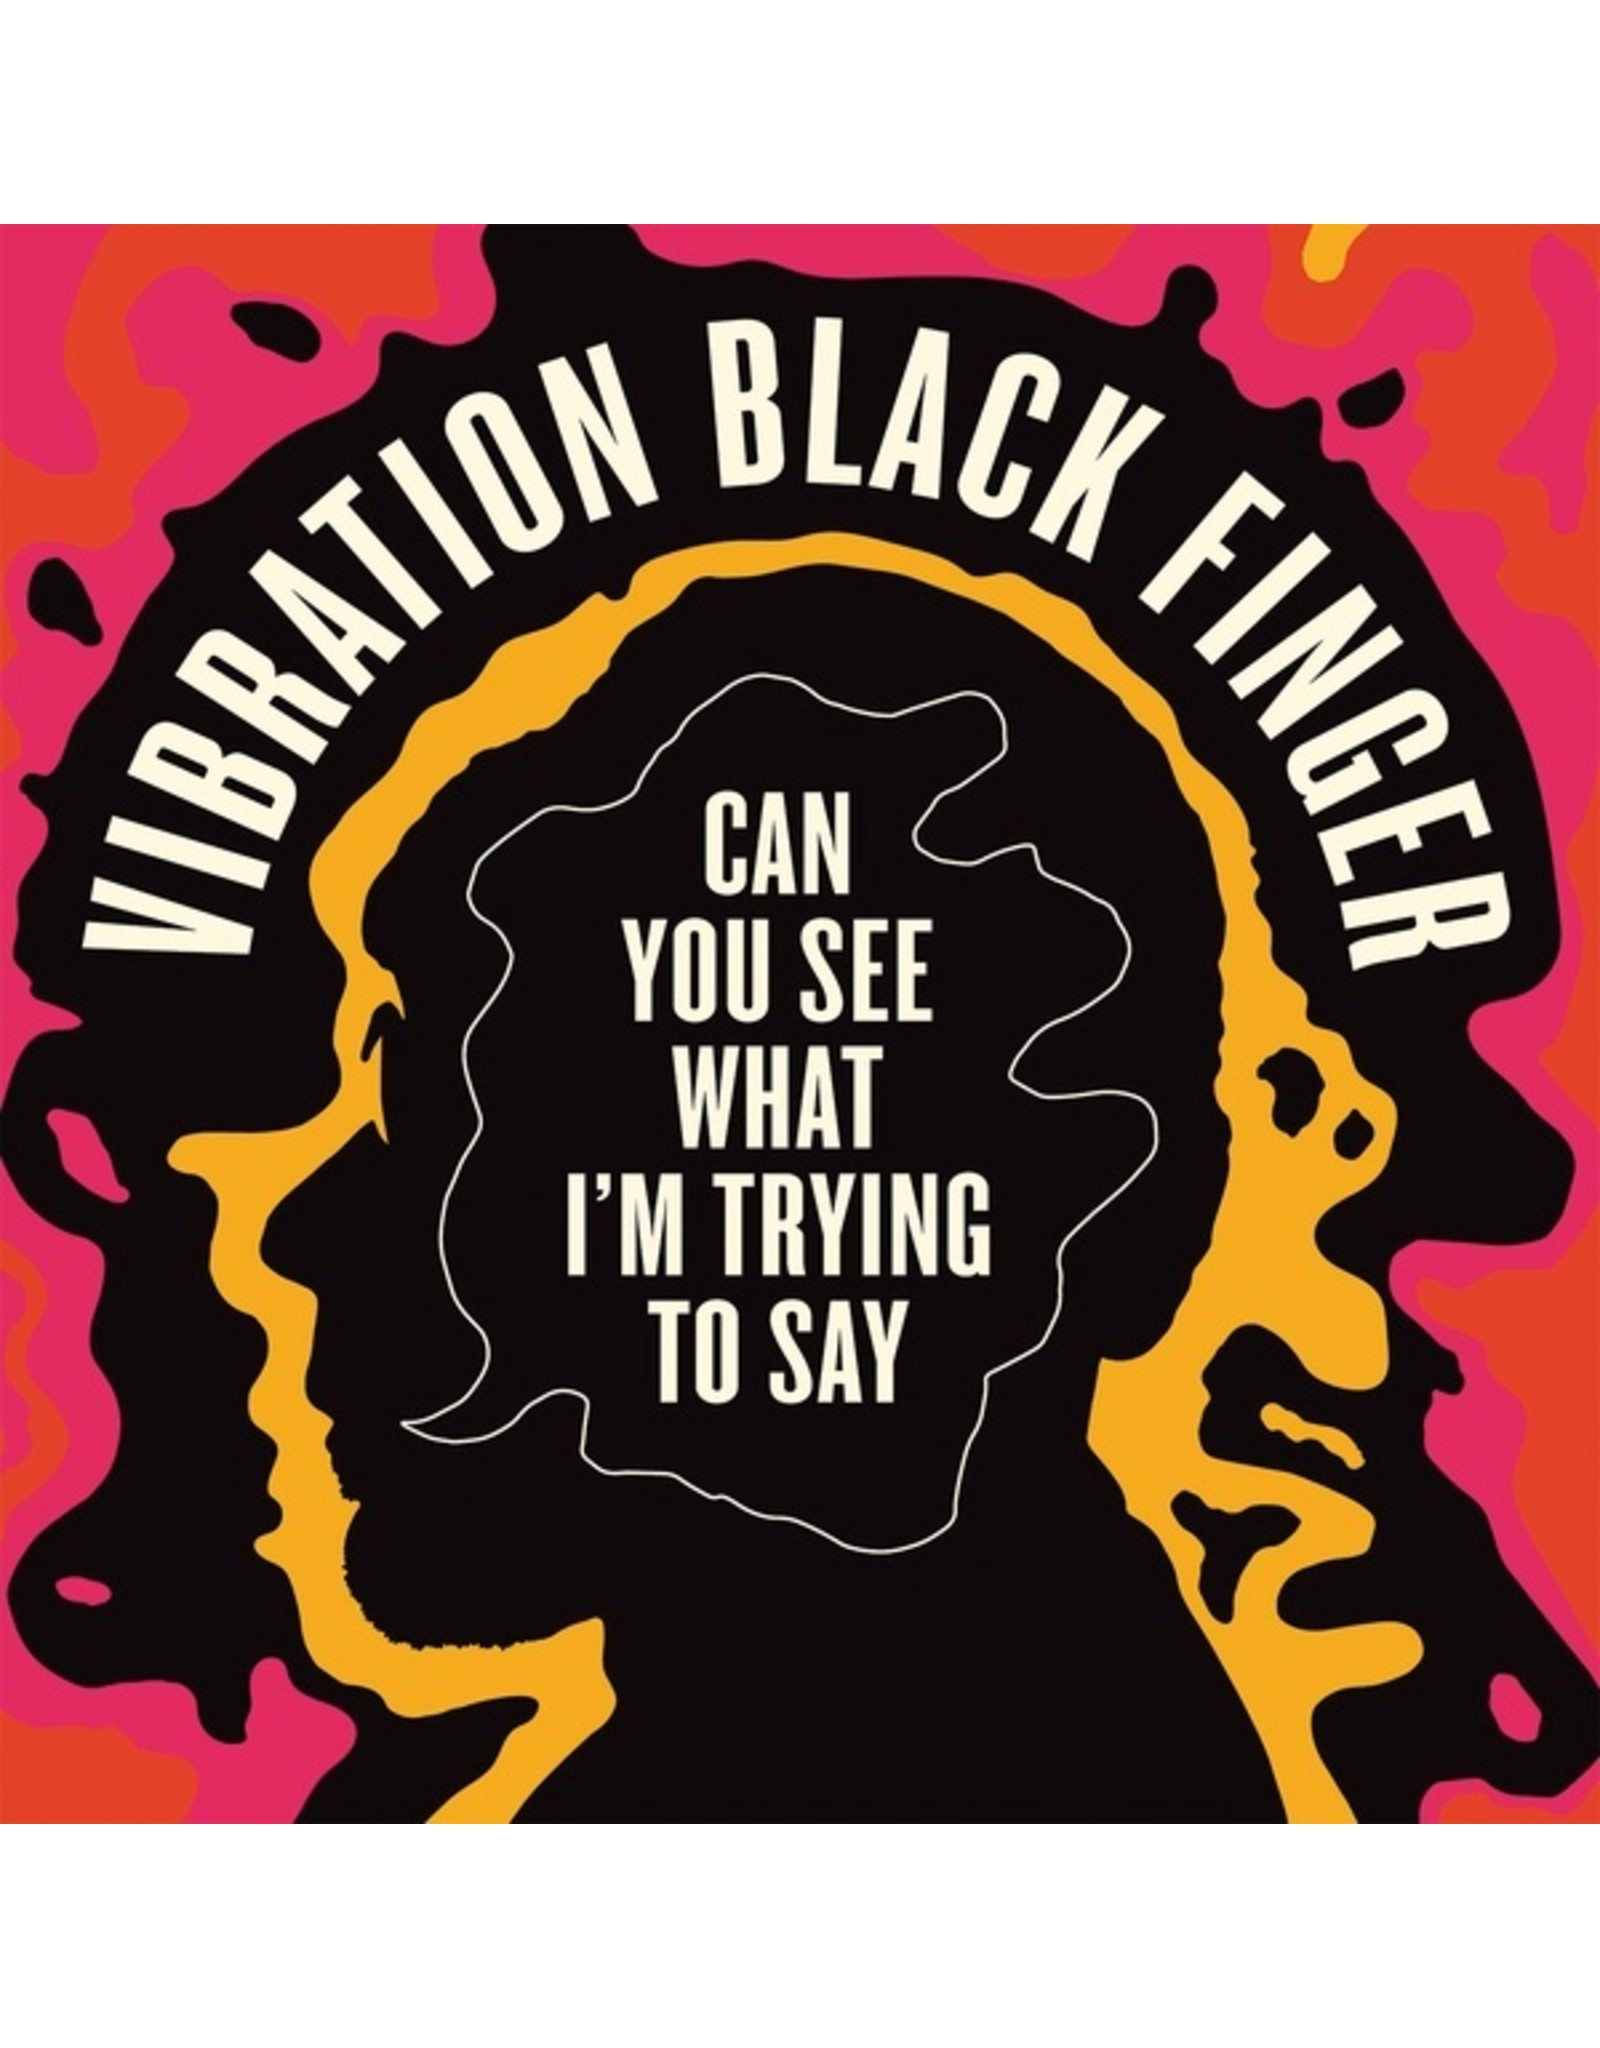 New Vinyl Vibration Black Finger - Can You See What I'm Trying To Say LP